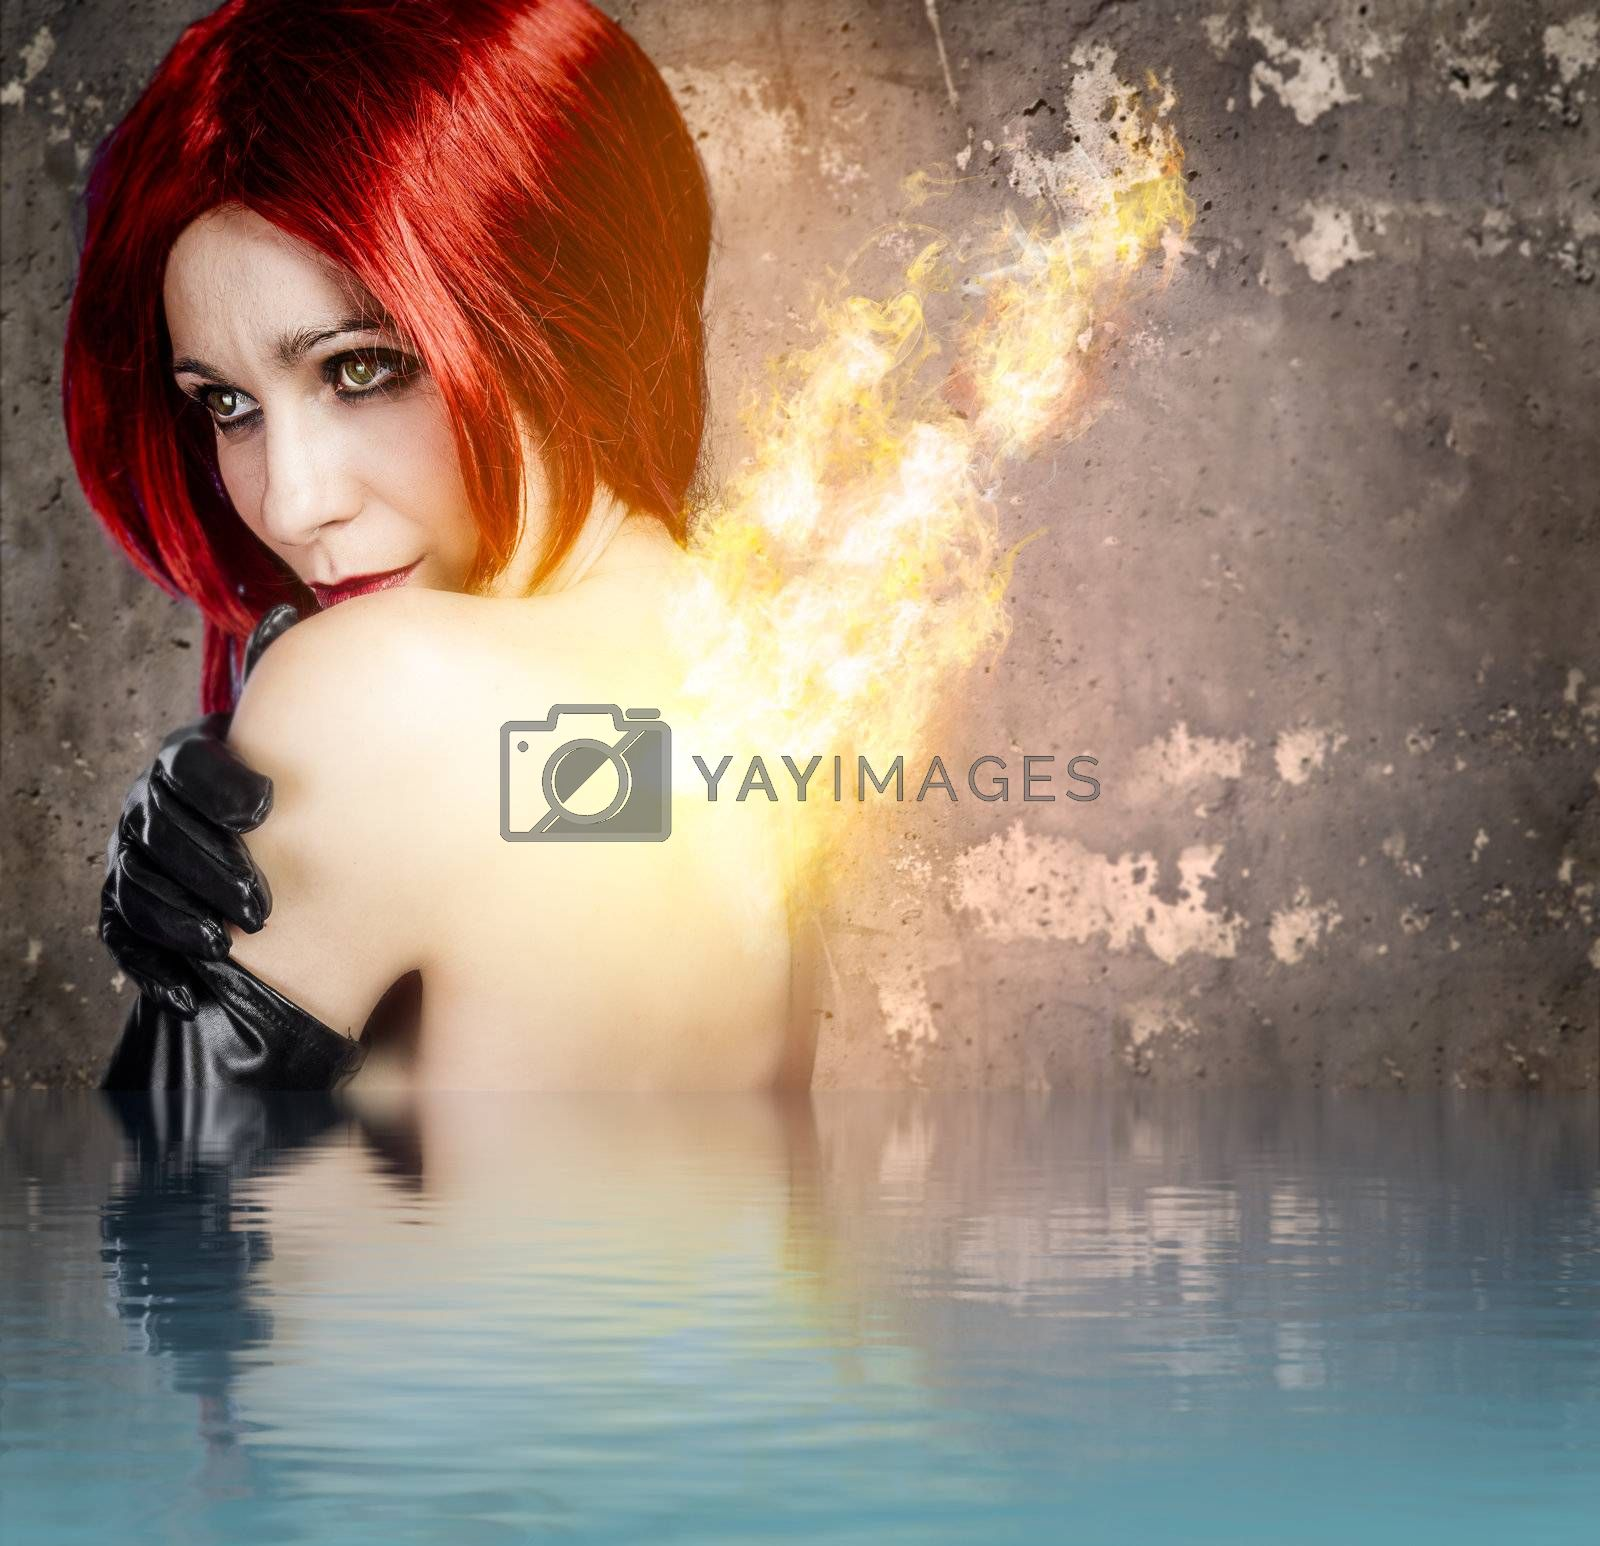 Red-haired woman with back fire on water effect